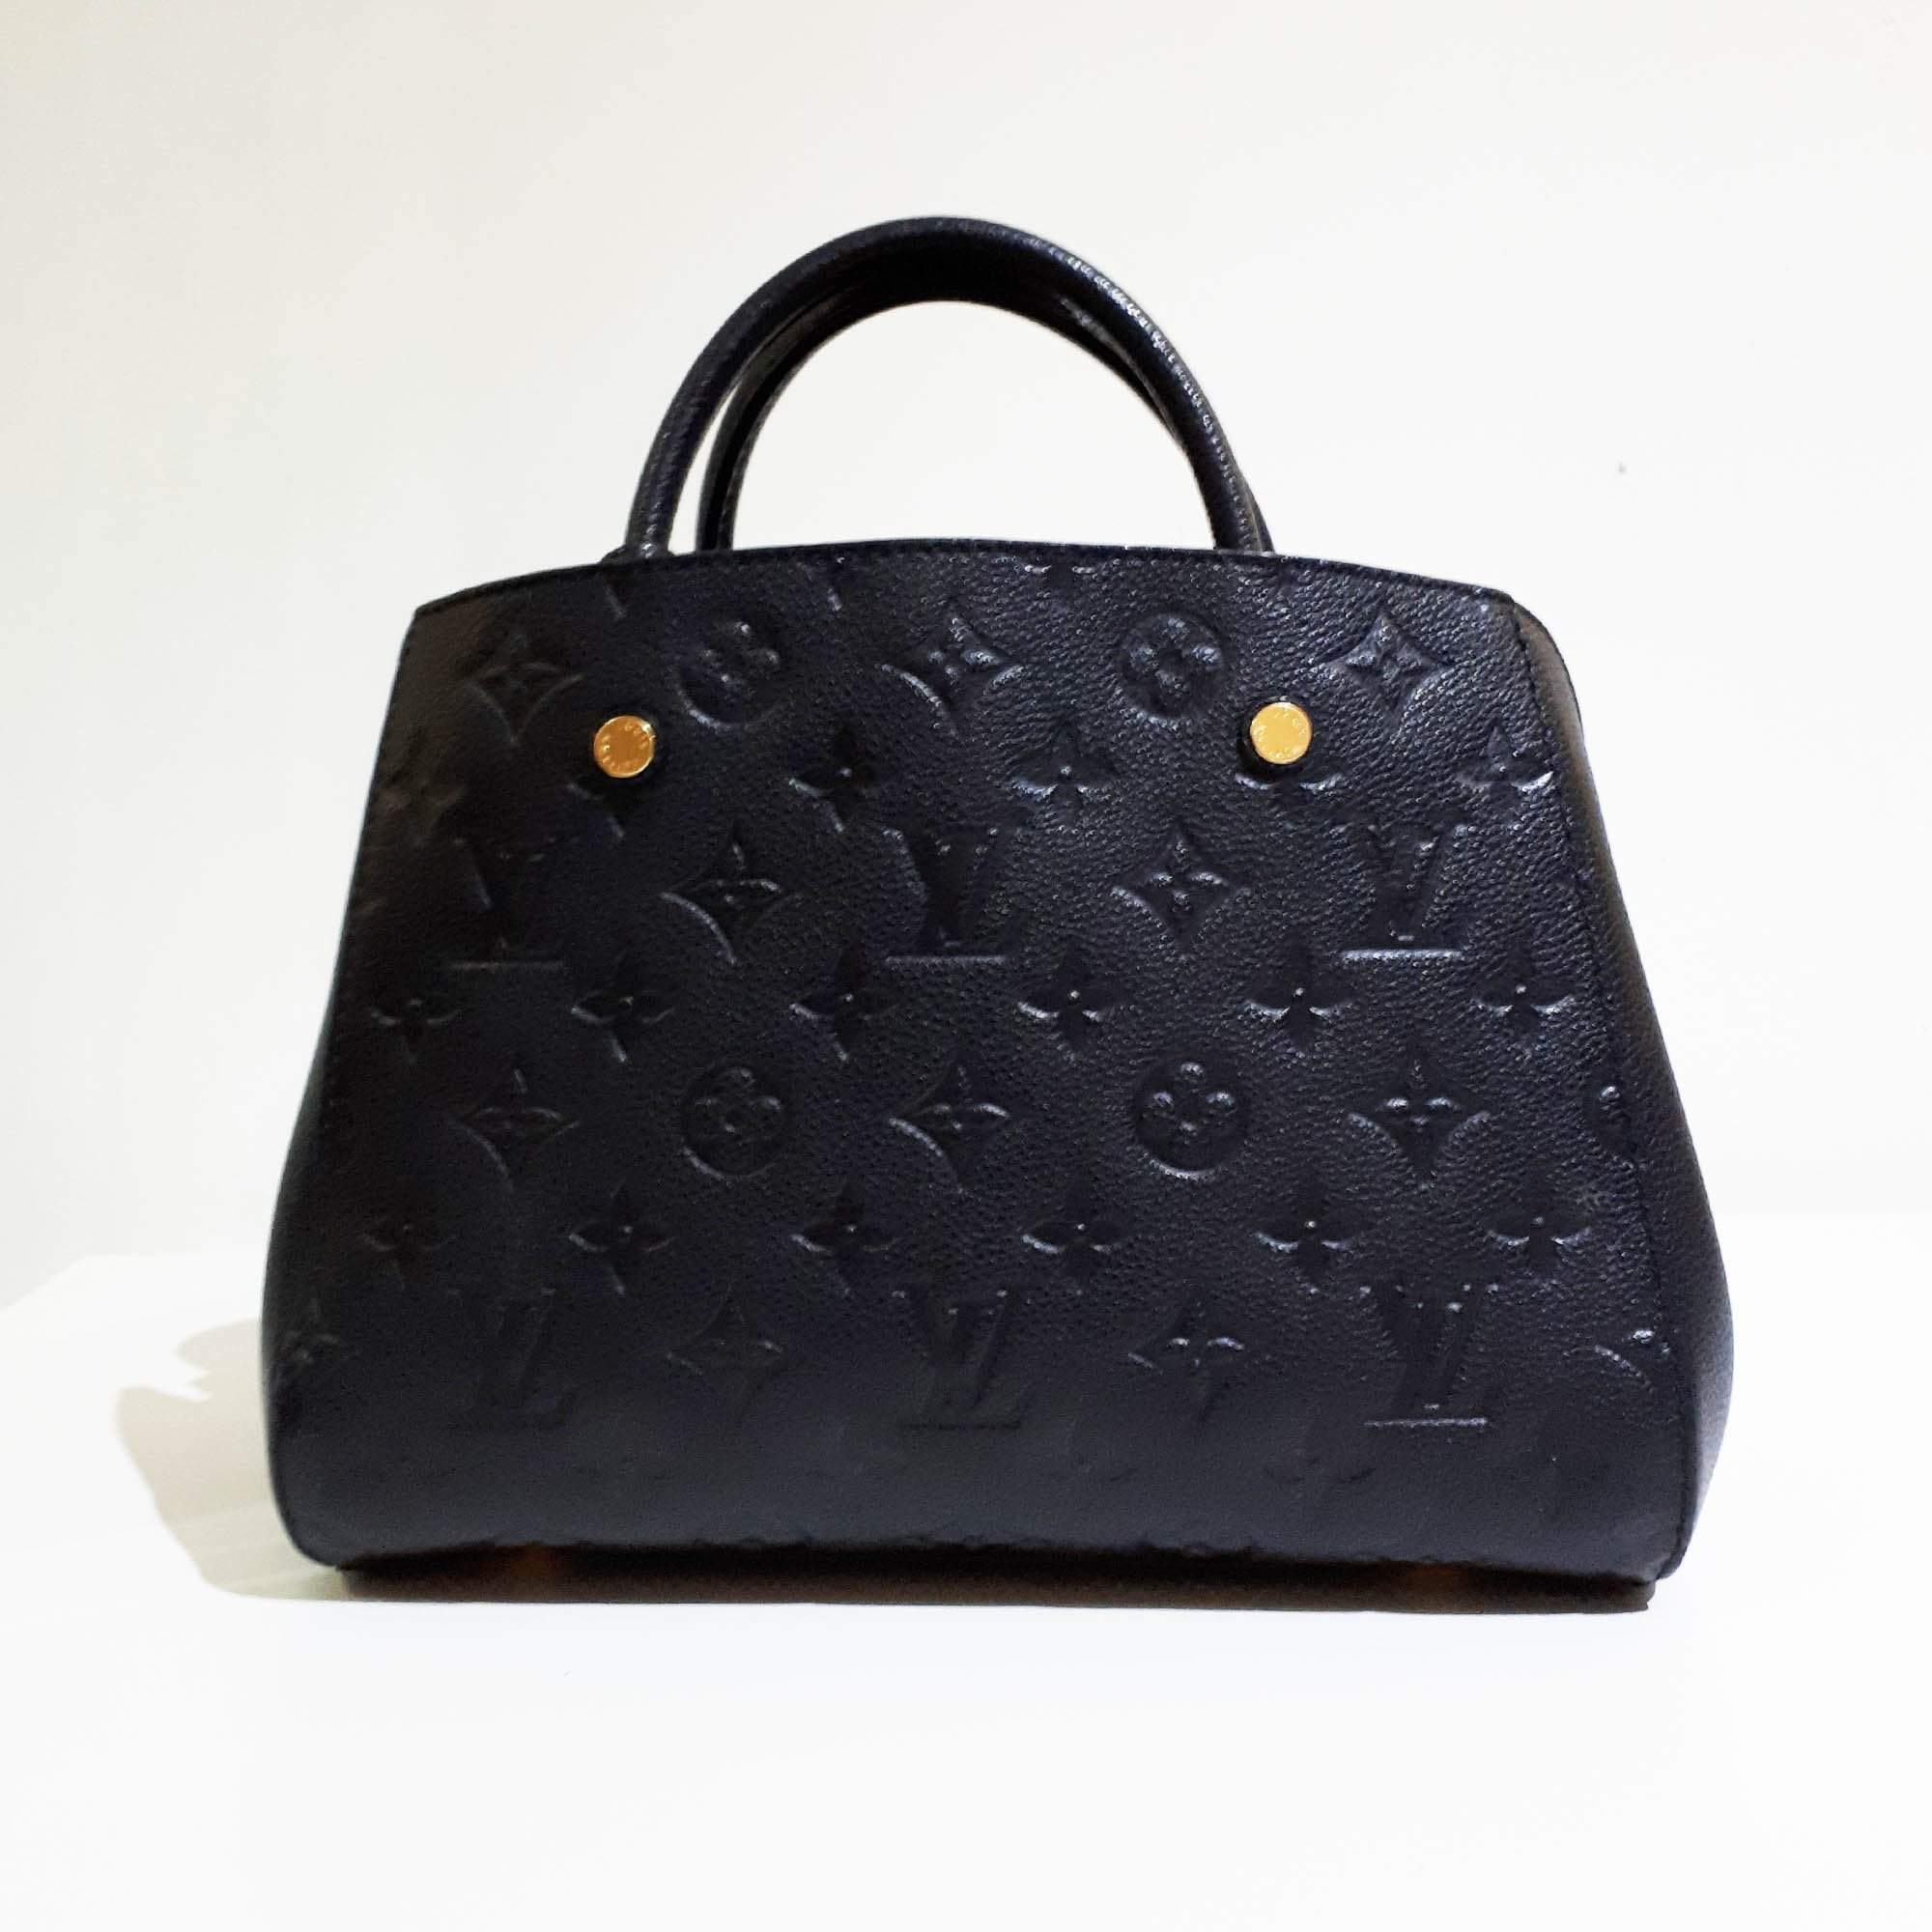 excellent quality luxuriant in design new images of louis vuitton ponthieu pm m43721 monogram empreinte leather